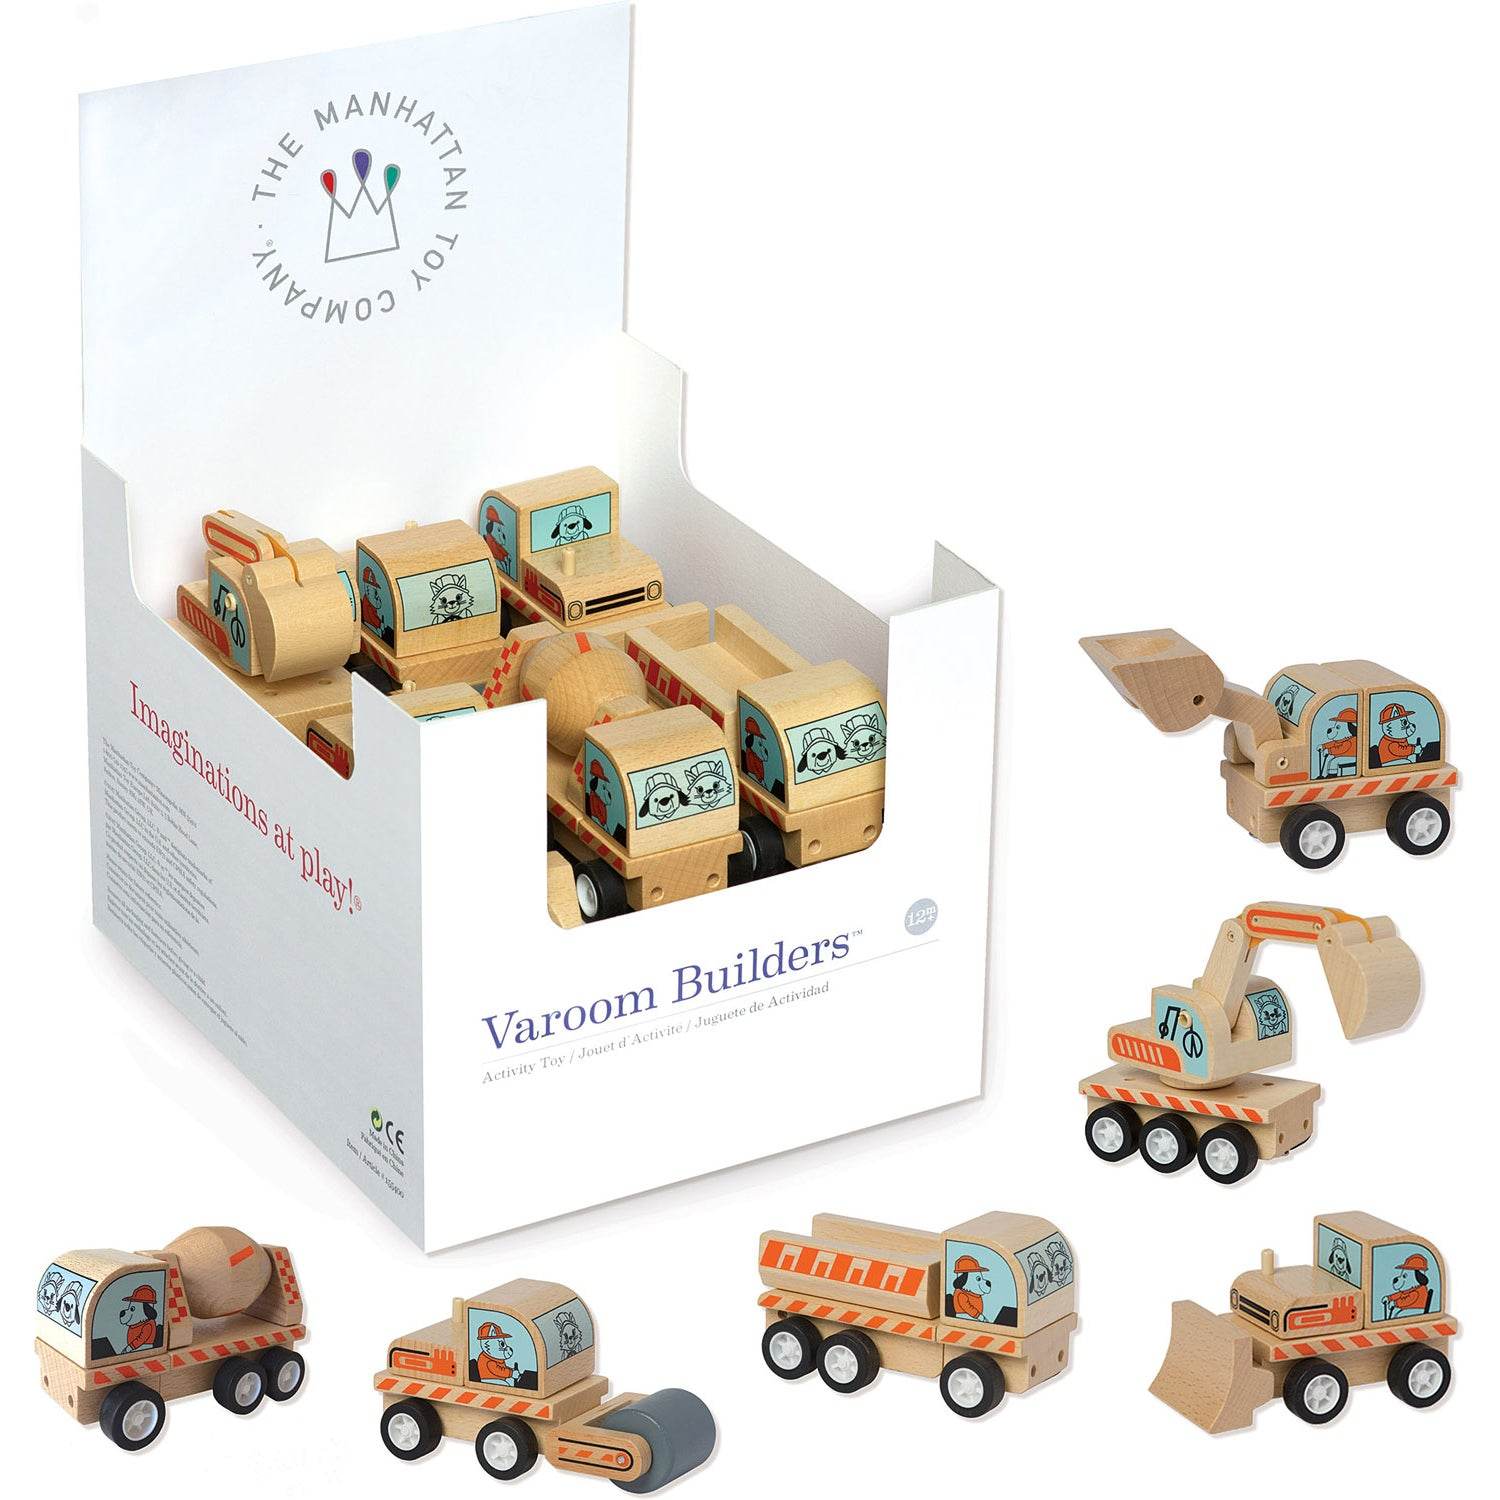 Manhattan Toy Company: Varoom Builders